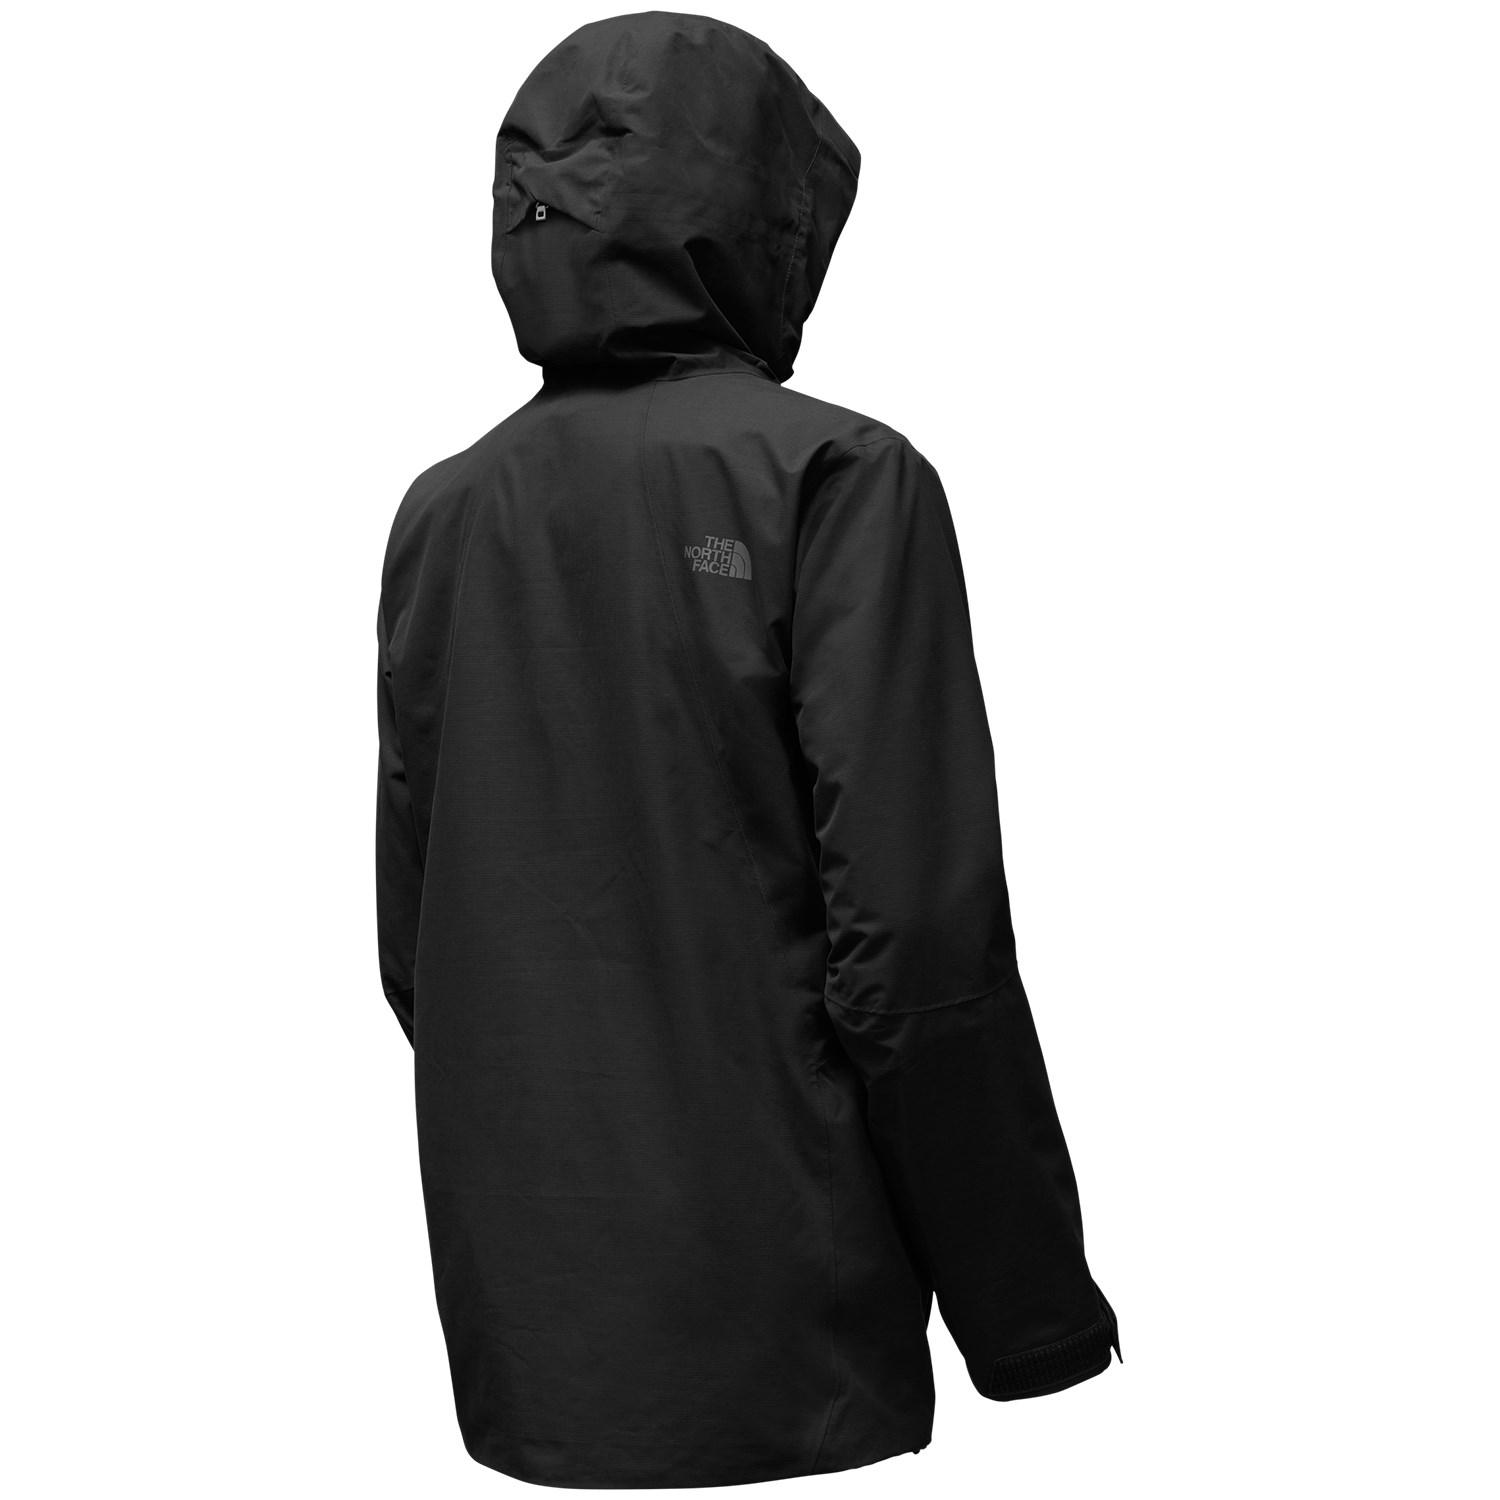 45a999e56f8a The North Face NFZ Jacket